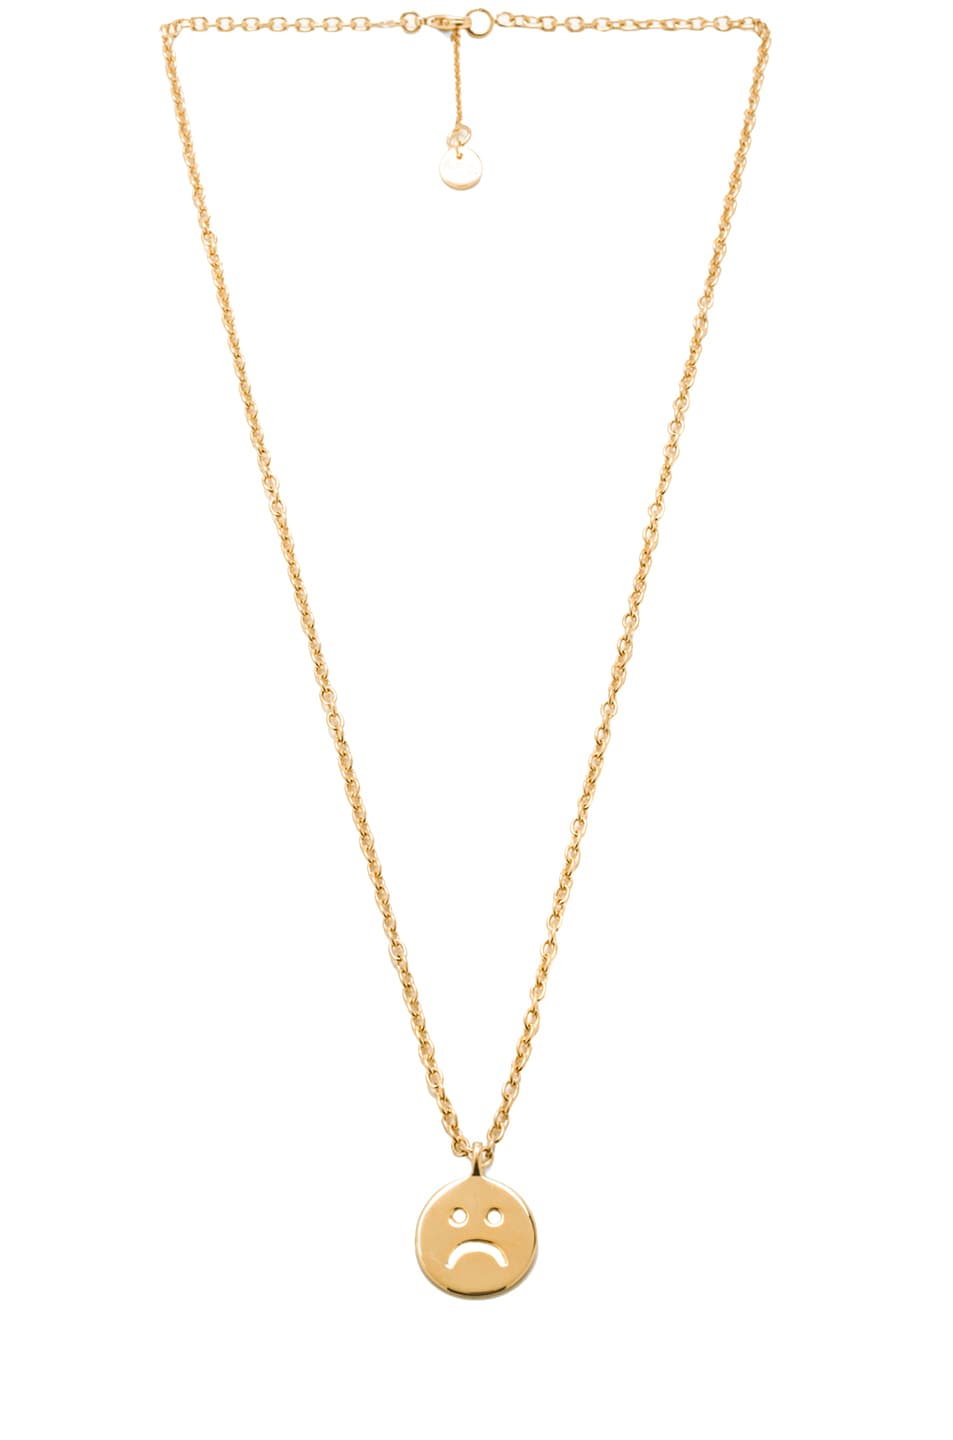 serge image apc a necklace silver p fwrd in of product c